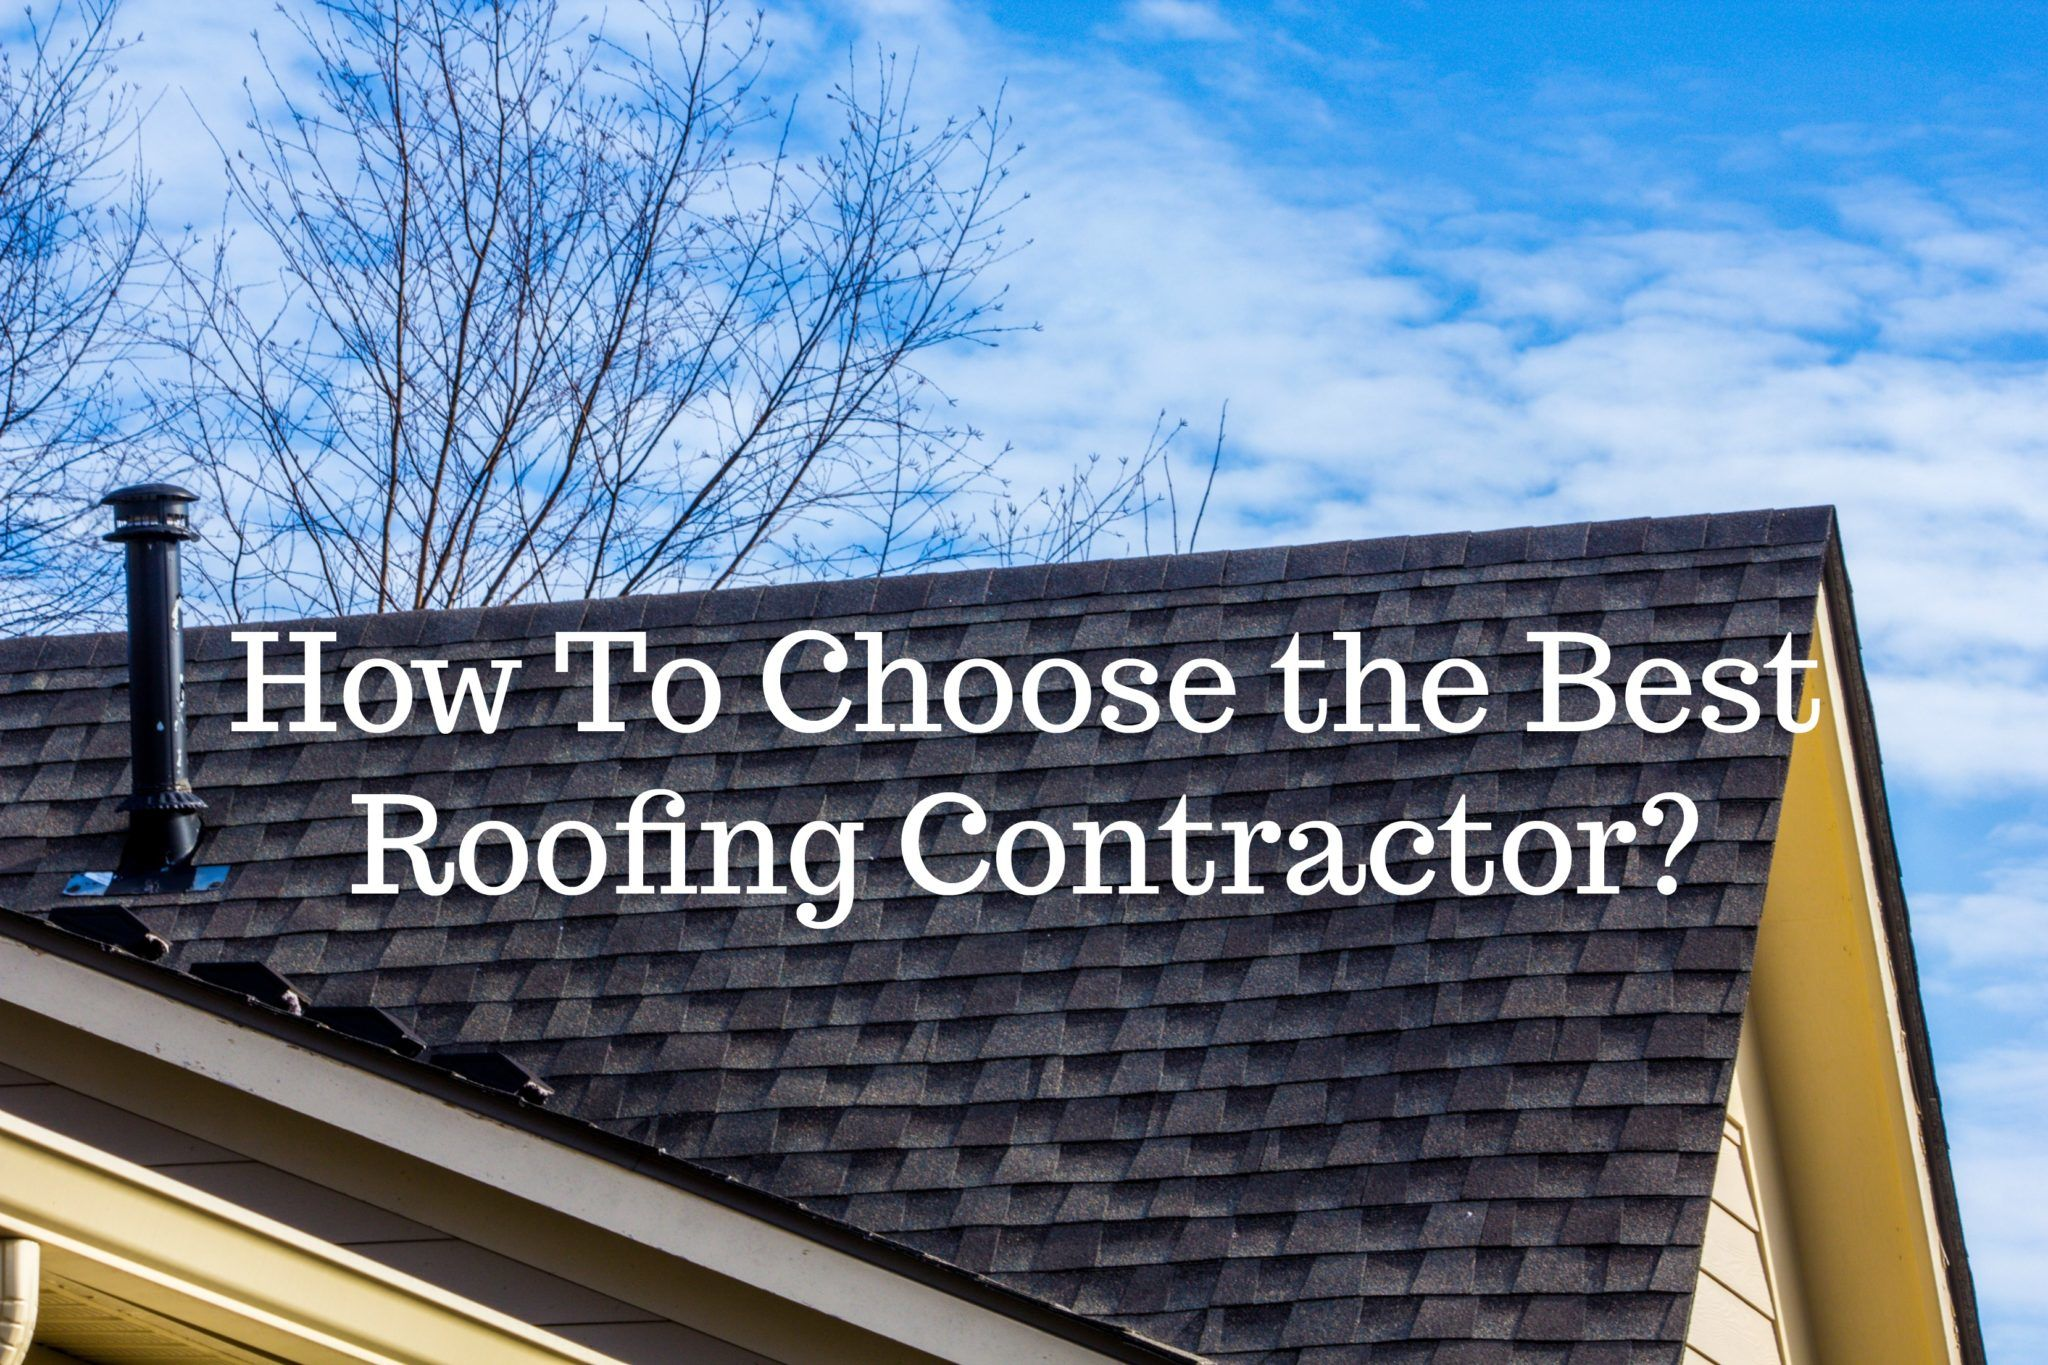 How-To-Choose-the-Best-Roofing-Contractor